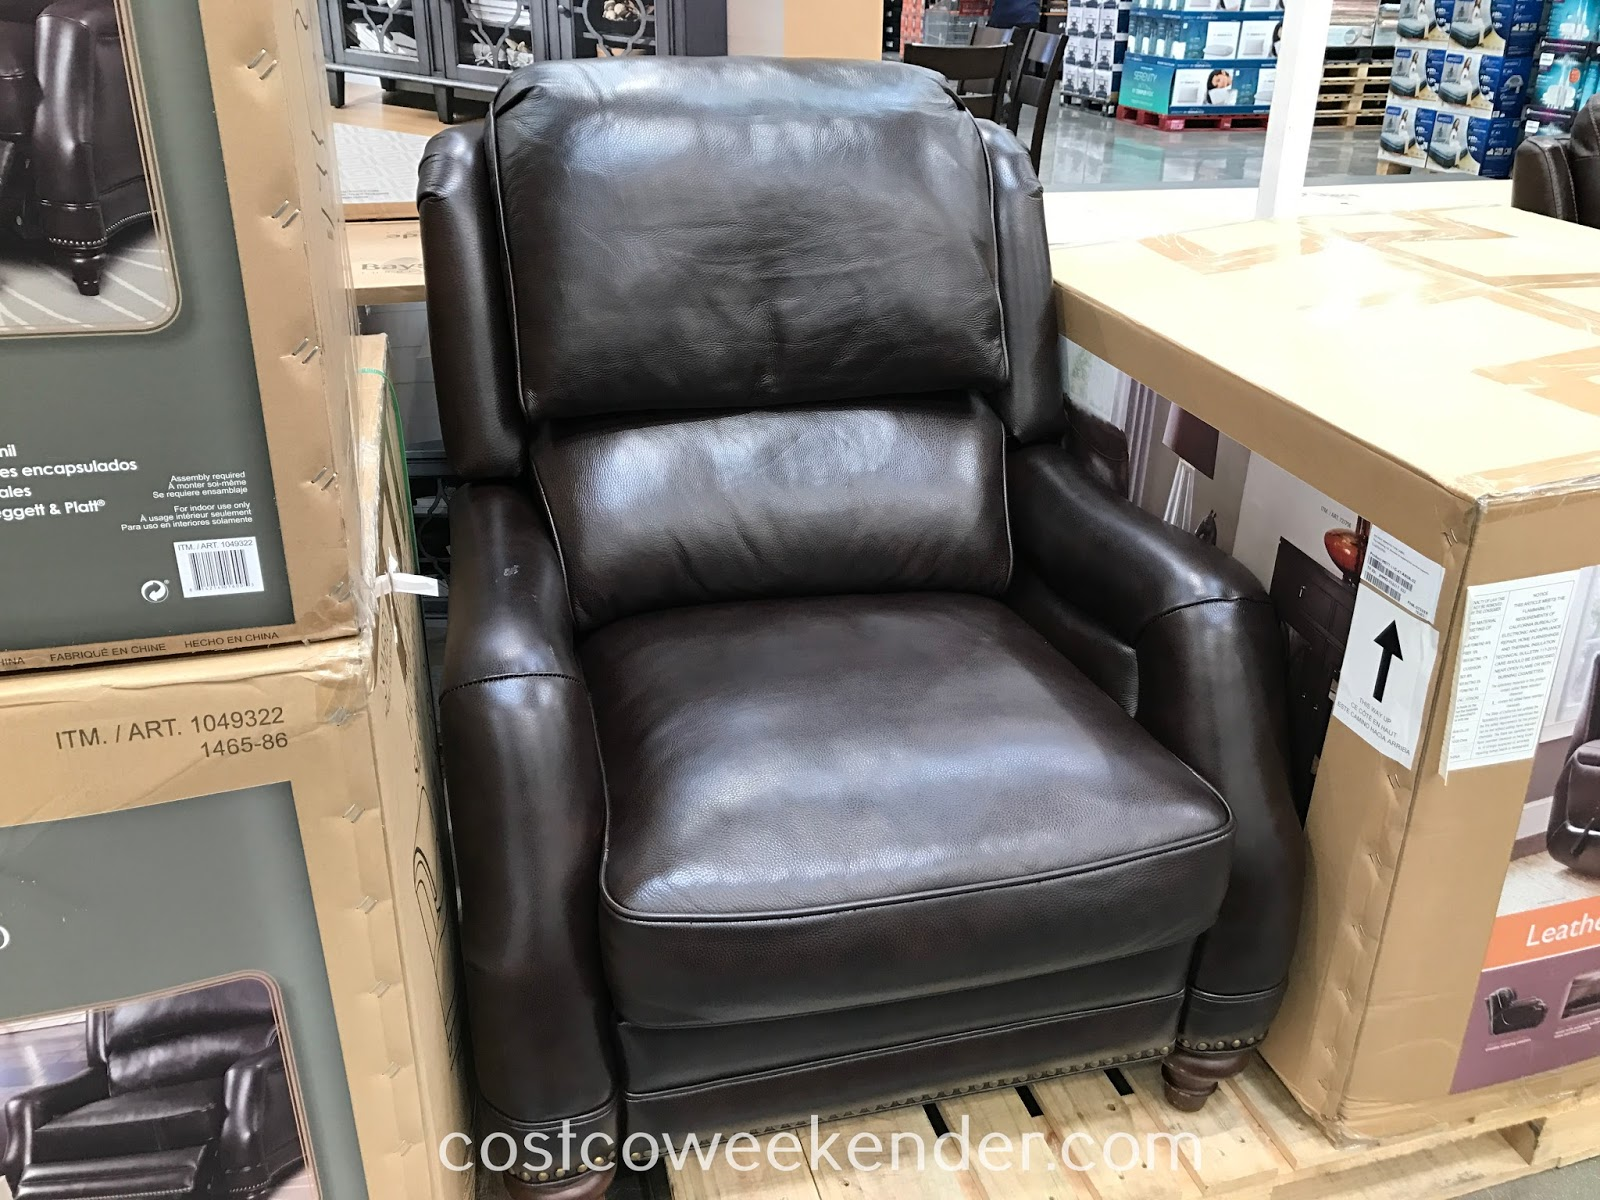 Synergy Recliner Chair Electric Swing Home Furnishings Leather   Costco Weekender